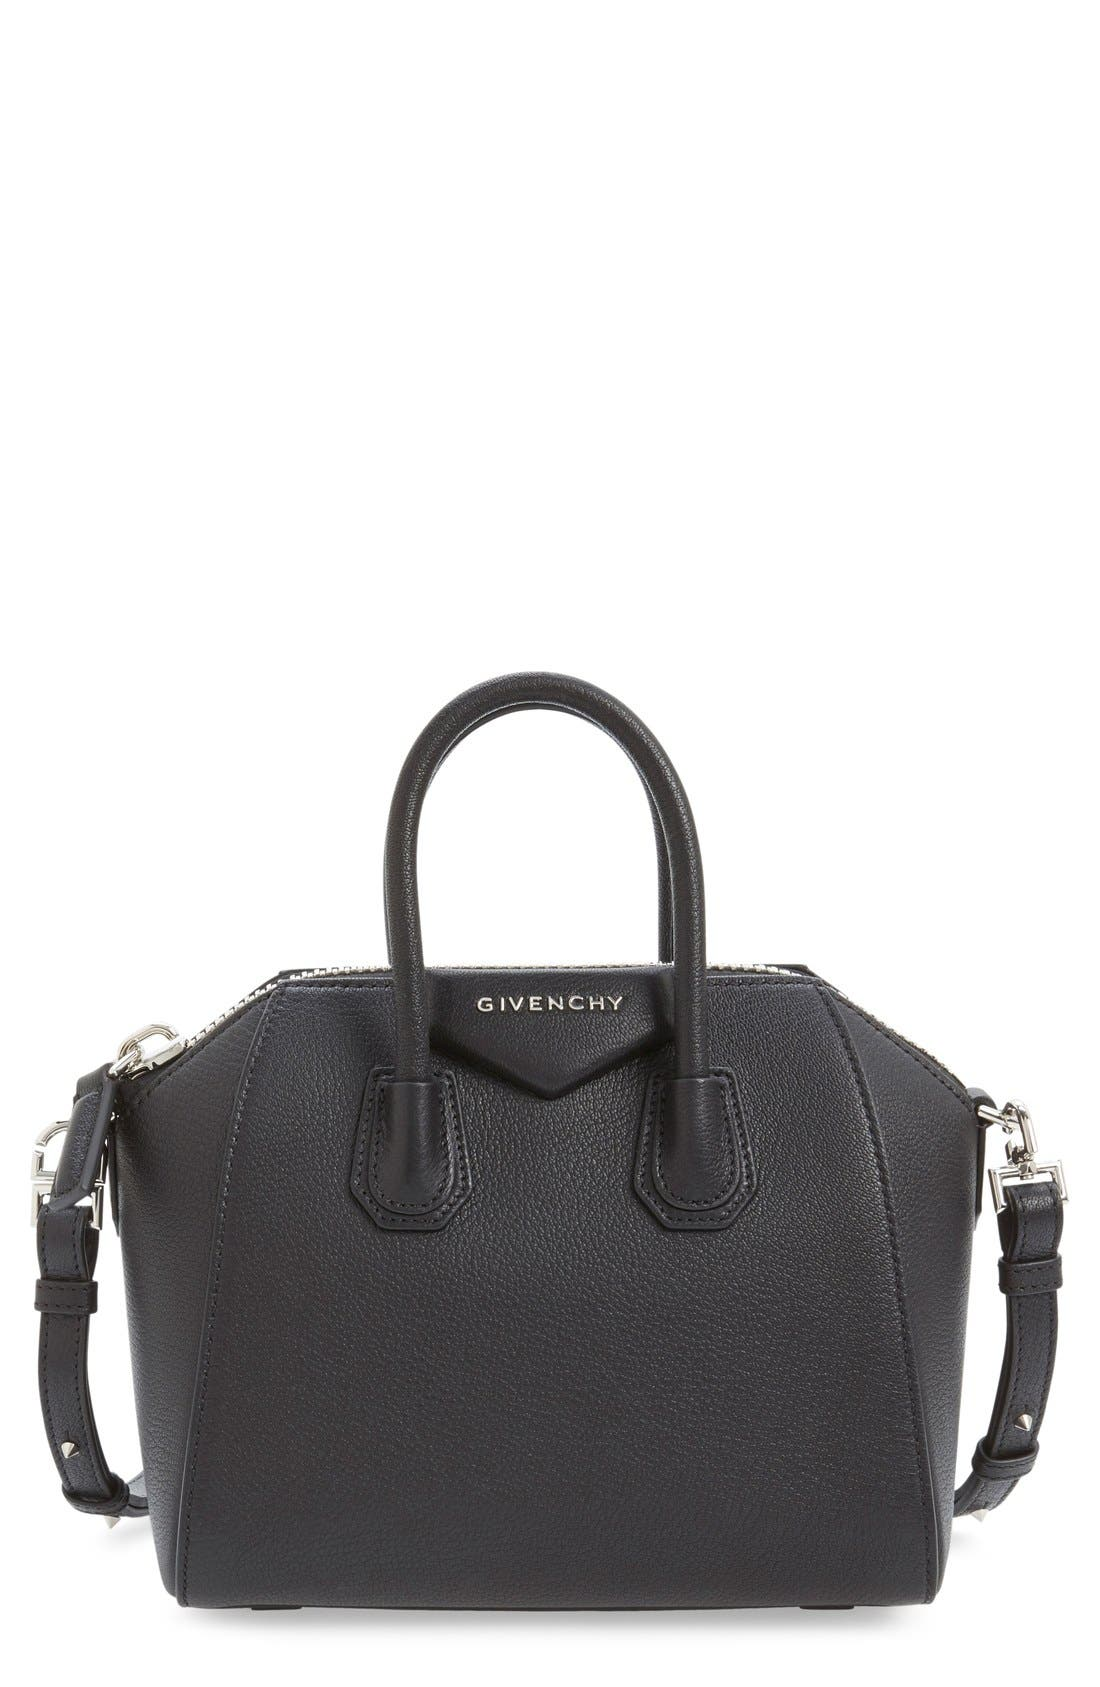 Givenchy 'Mini Antigona' Sugar Leather Satchel